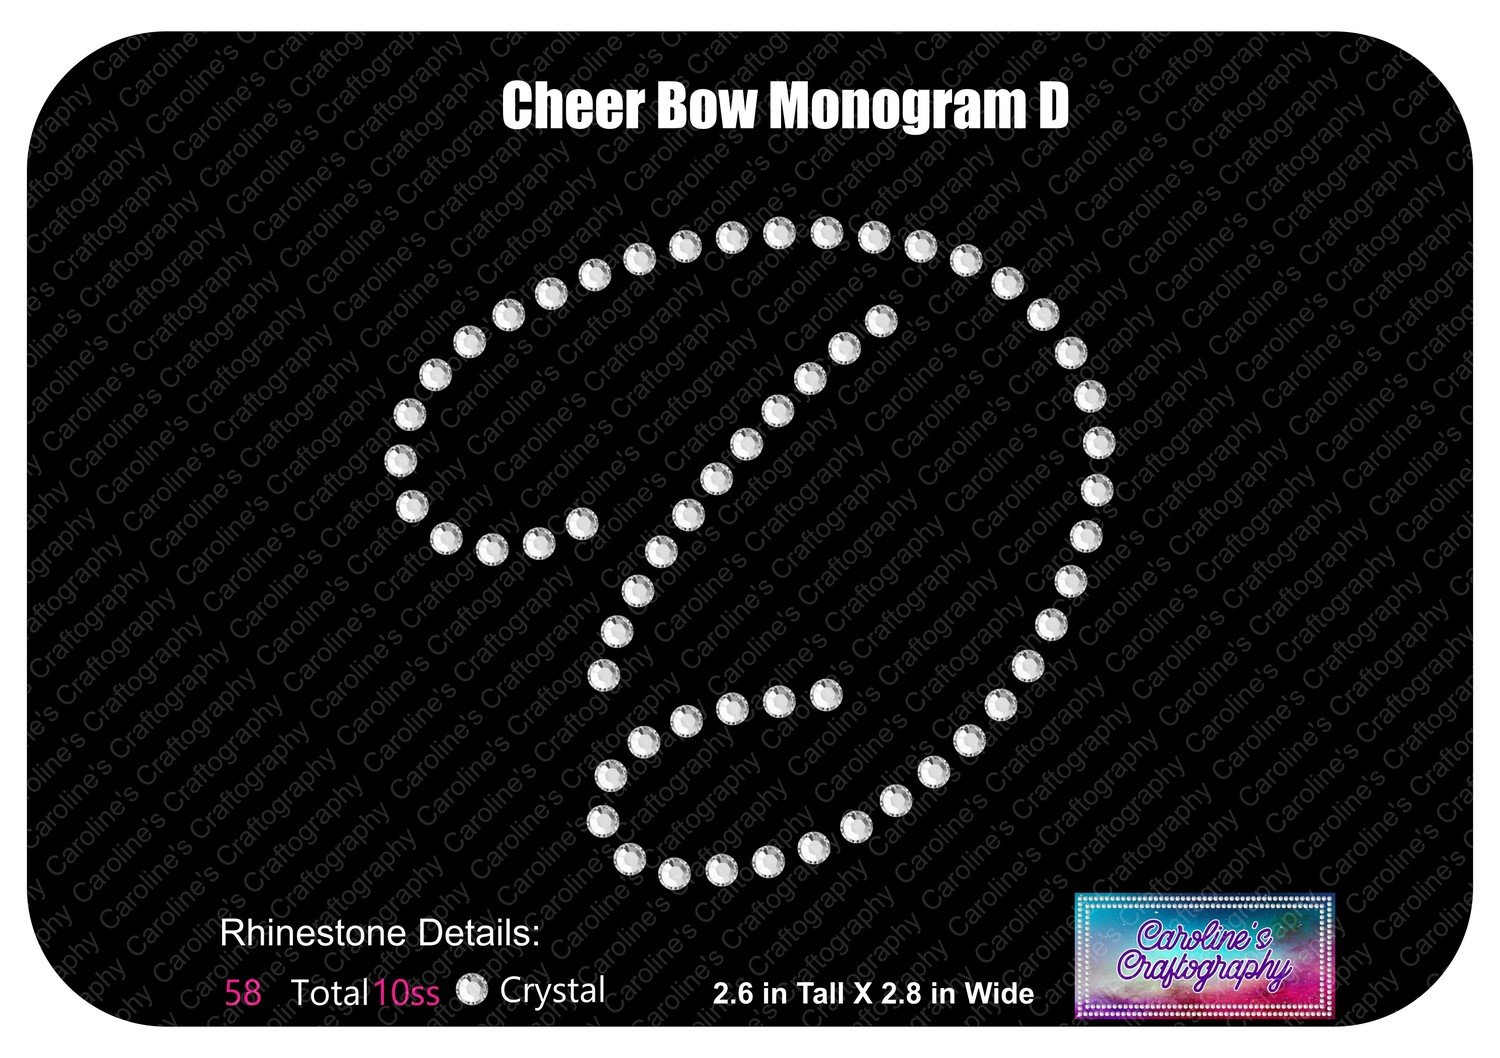 D Monogram Cheer Add-on Stone